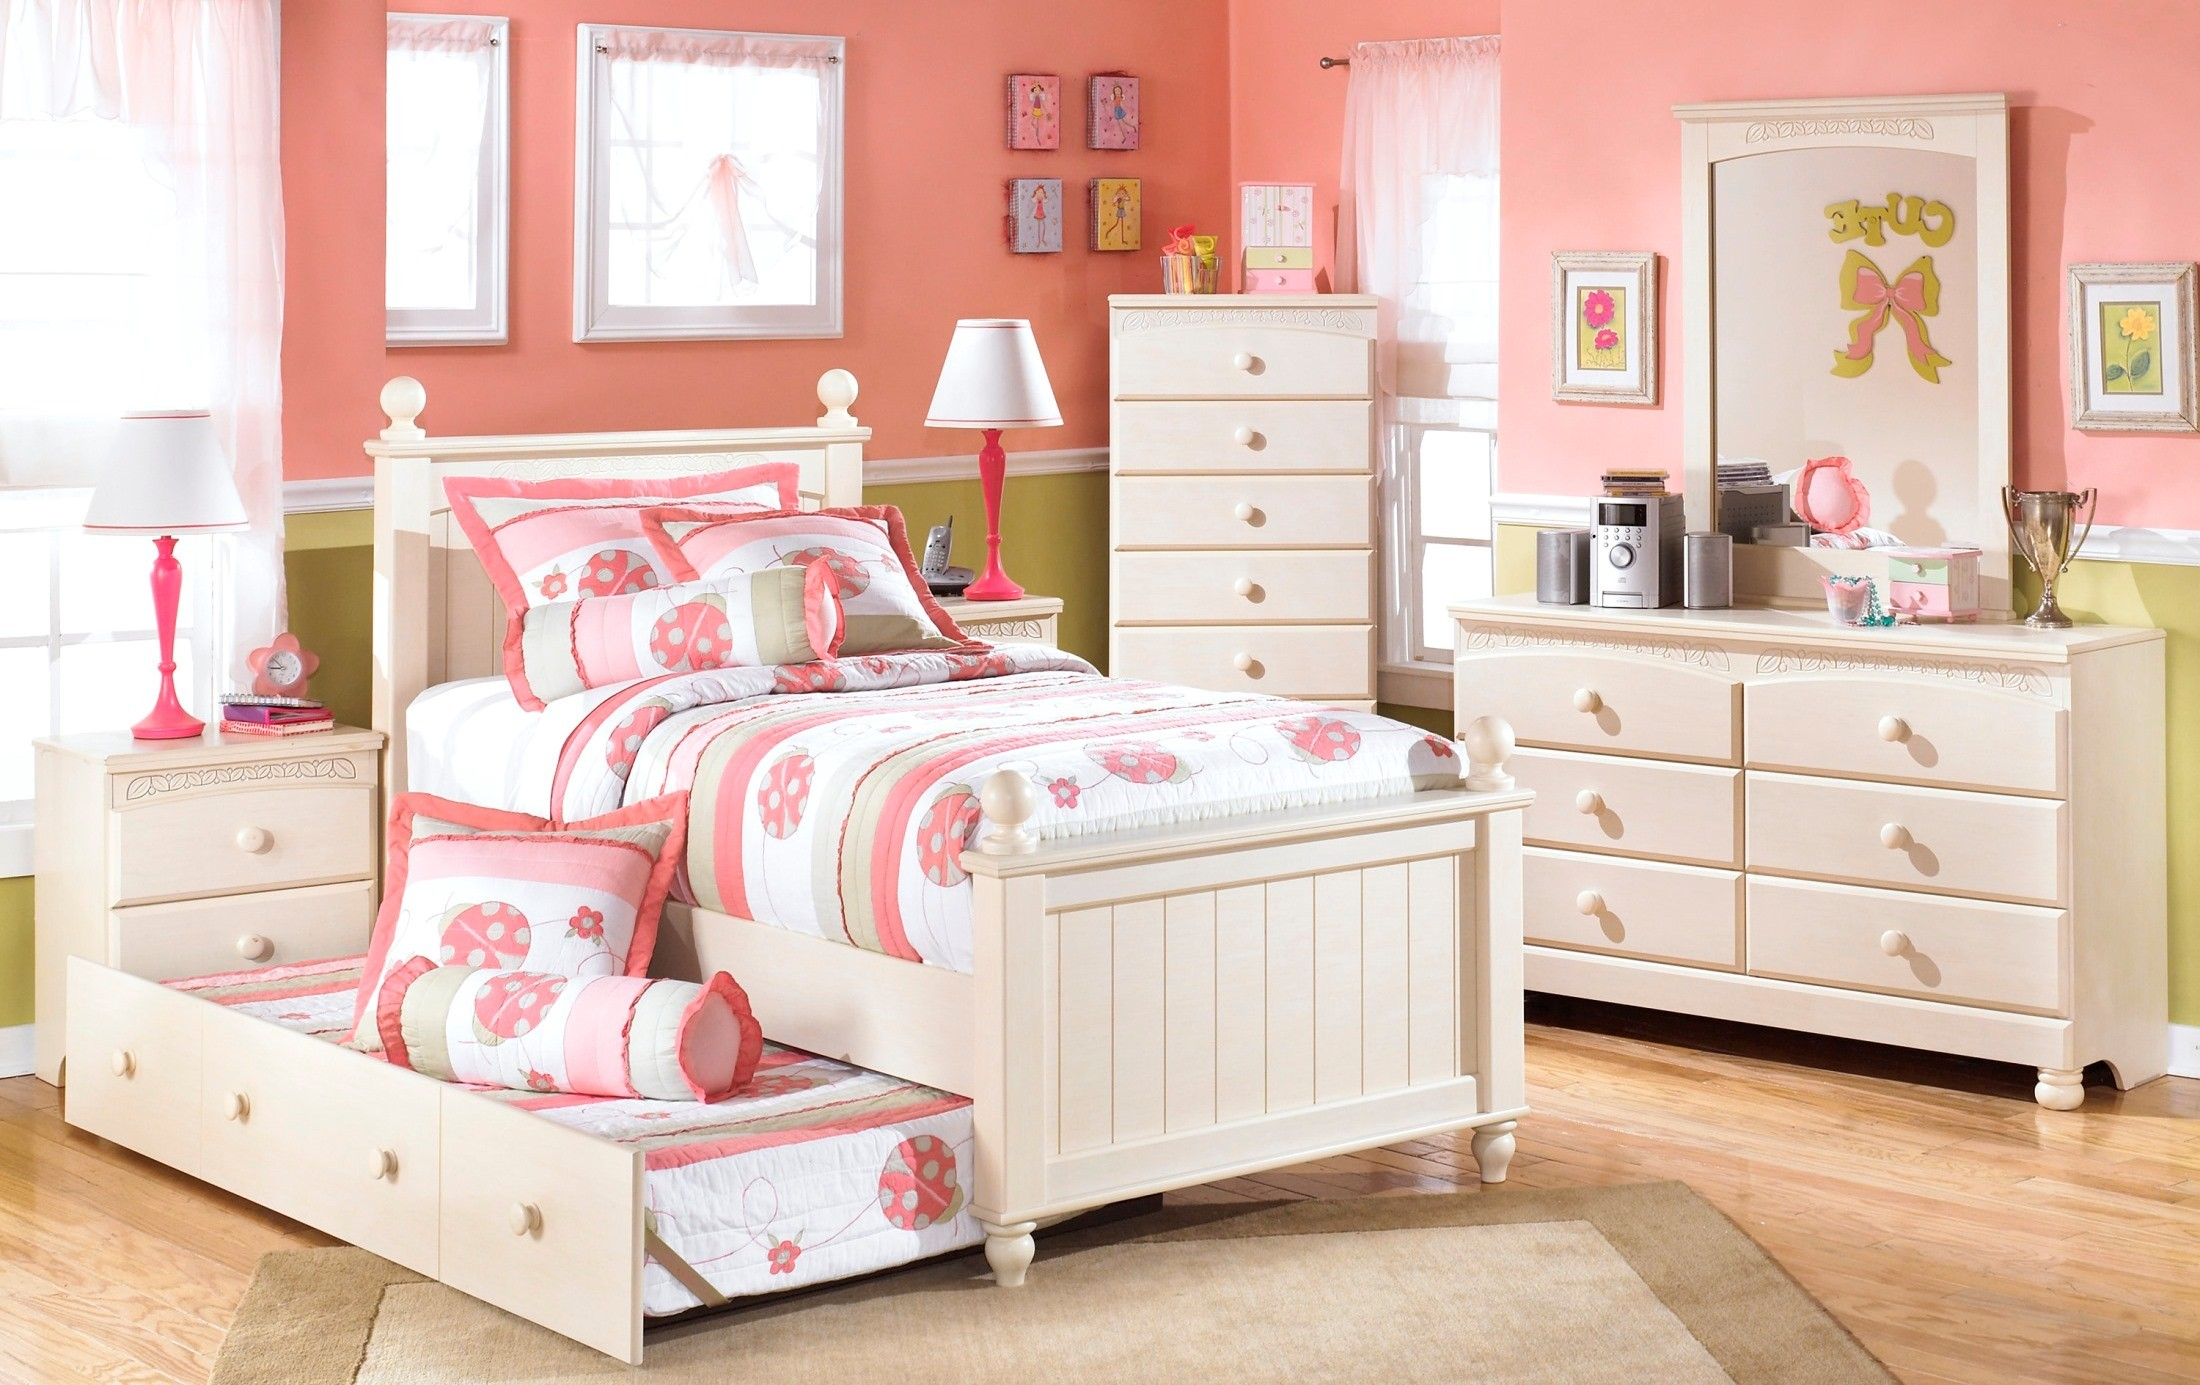 Cottage retreat youth poster trundle bedroom set from - Cottage retreat bedroom furniture ...